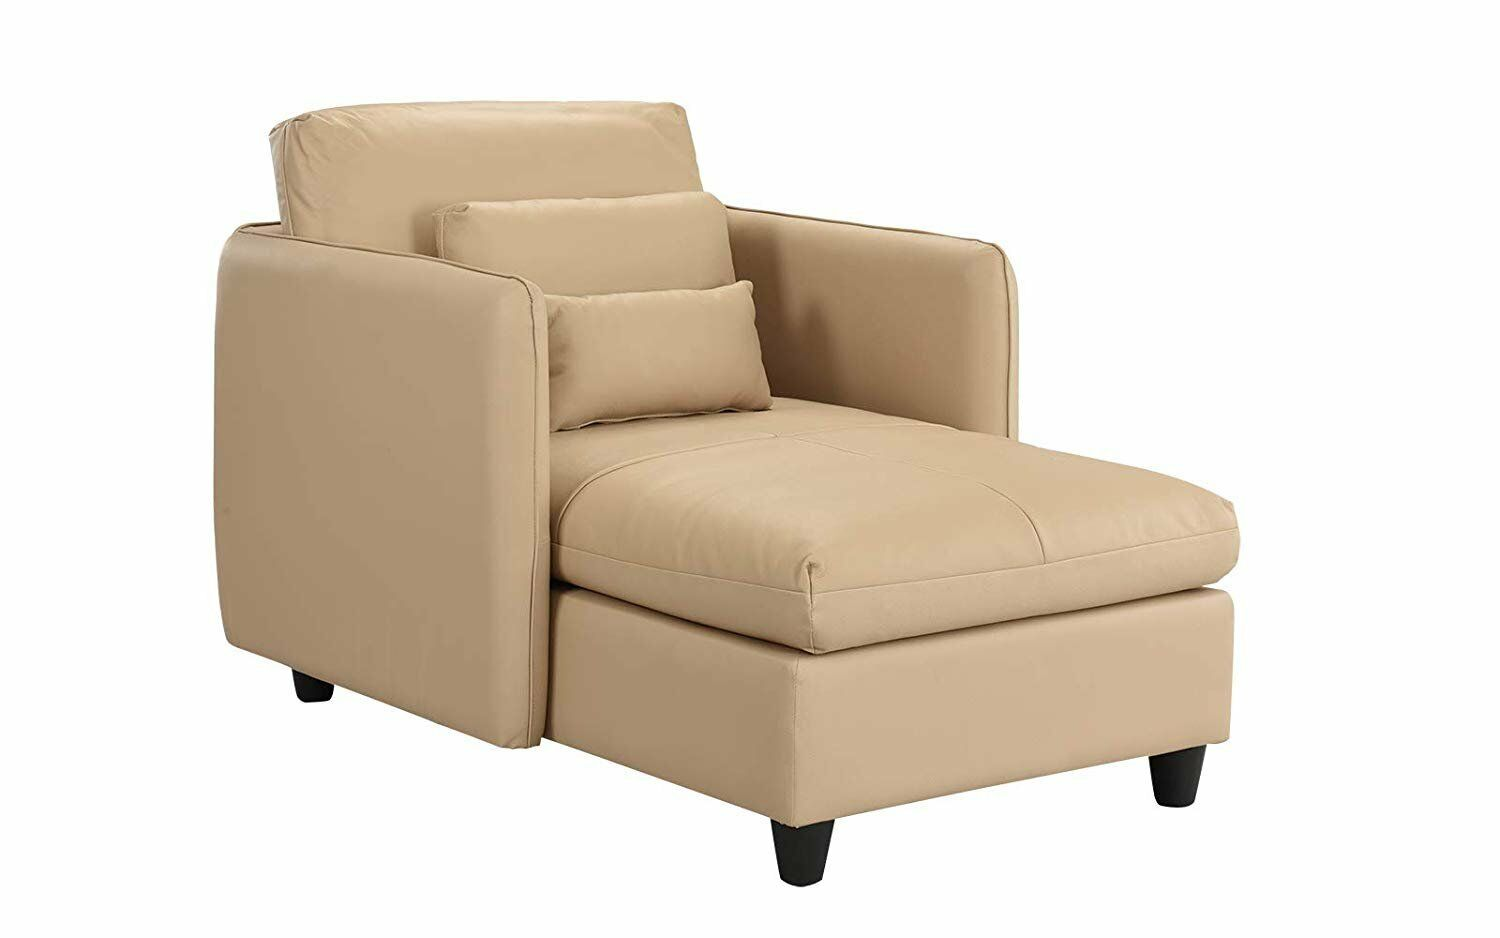 Chaise Lounge For Living Room